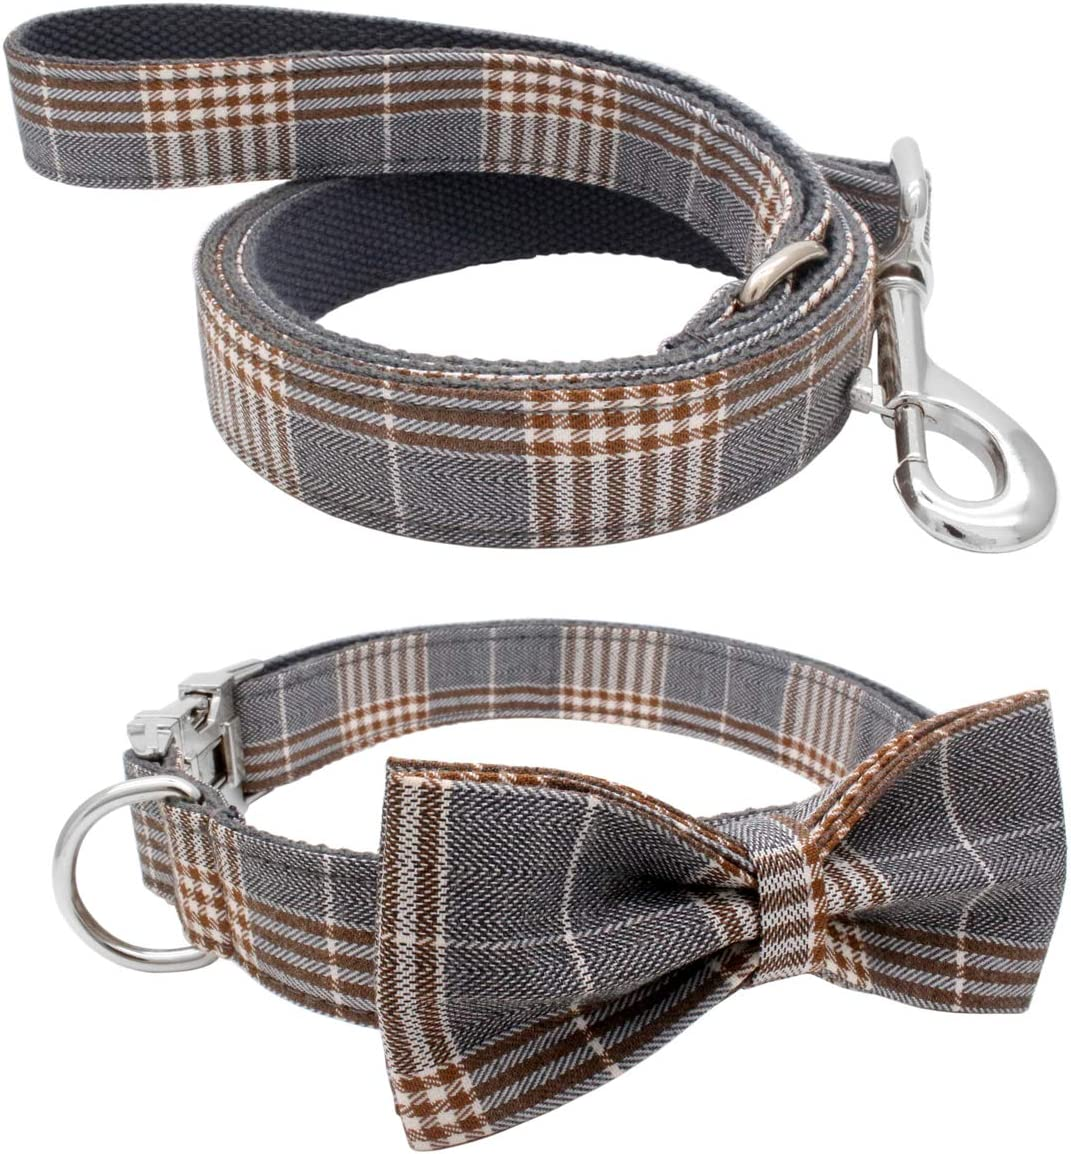 YOY Soft Challenge the lowest price of Japan Comfortable Adjustable Virginia Beach Mall Pet with Bowtie Du Collar Heavy